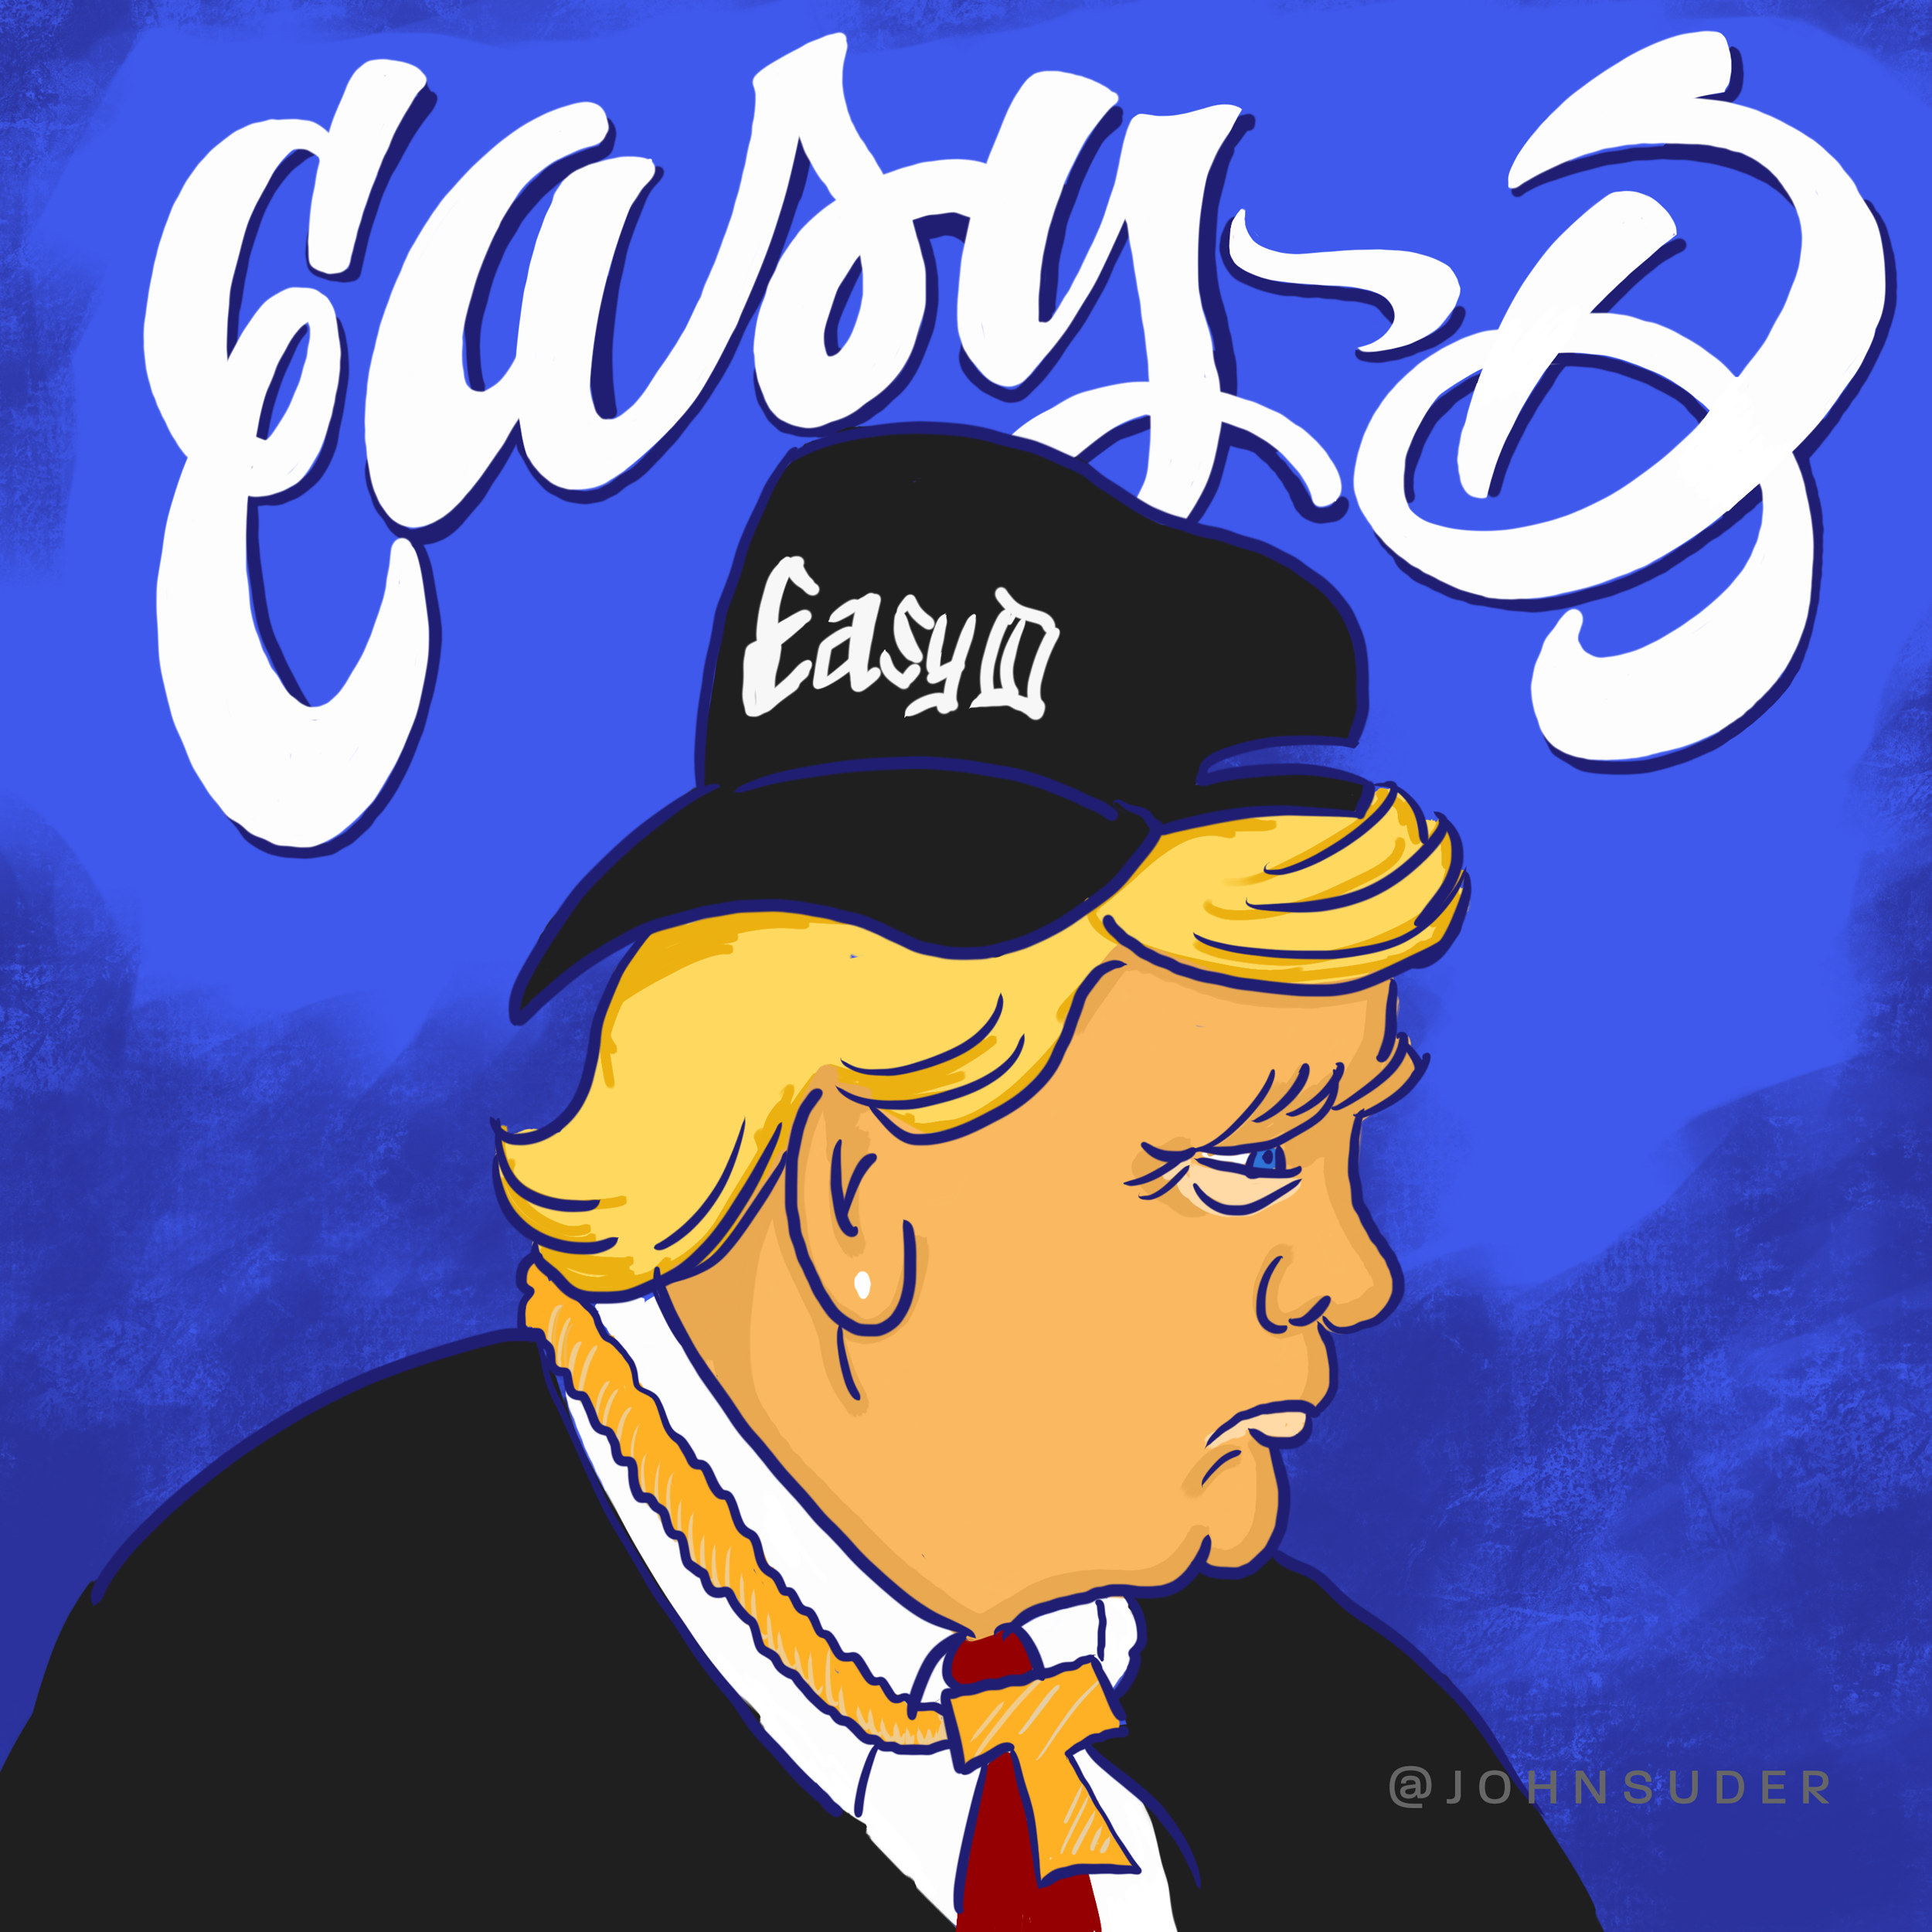 donald trump easy d by john suder.png